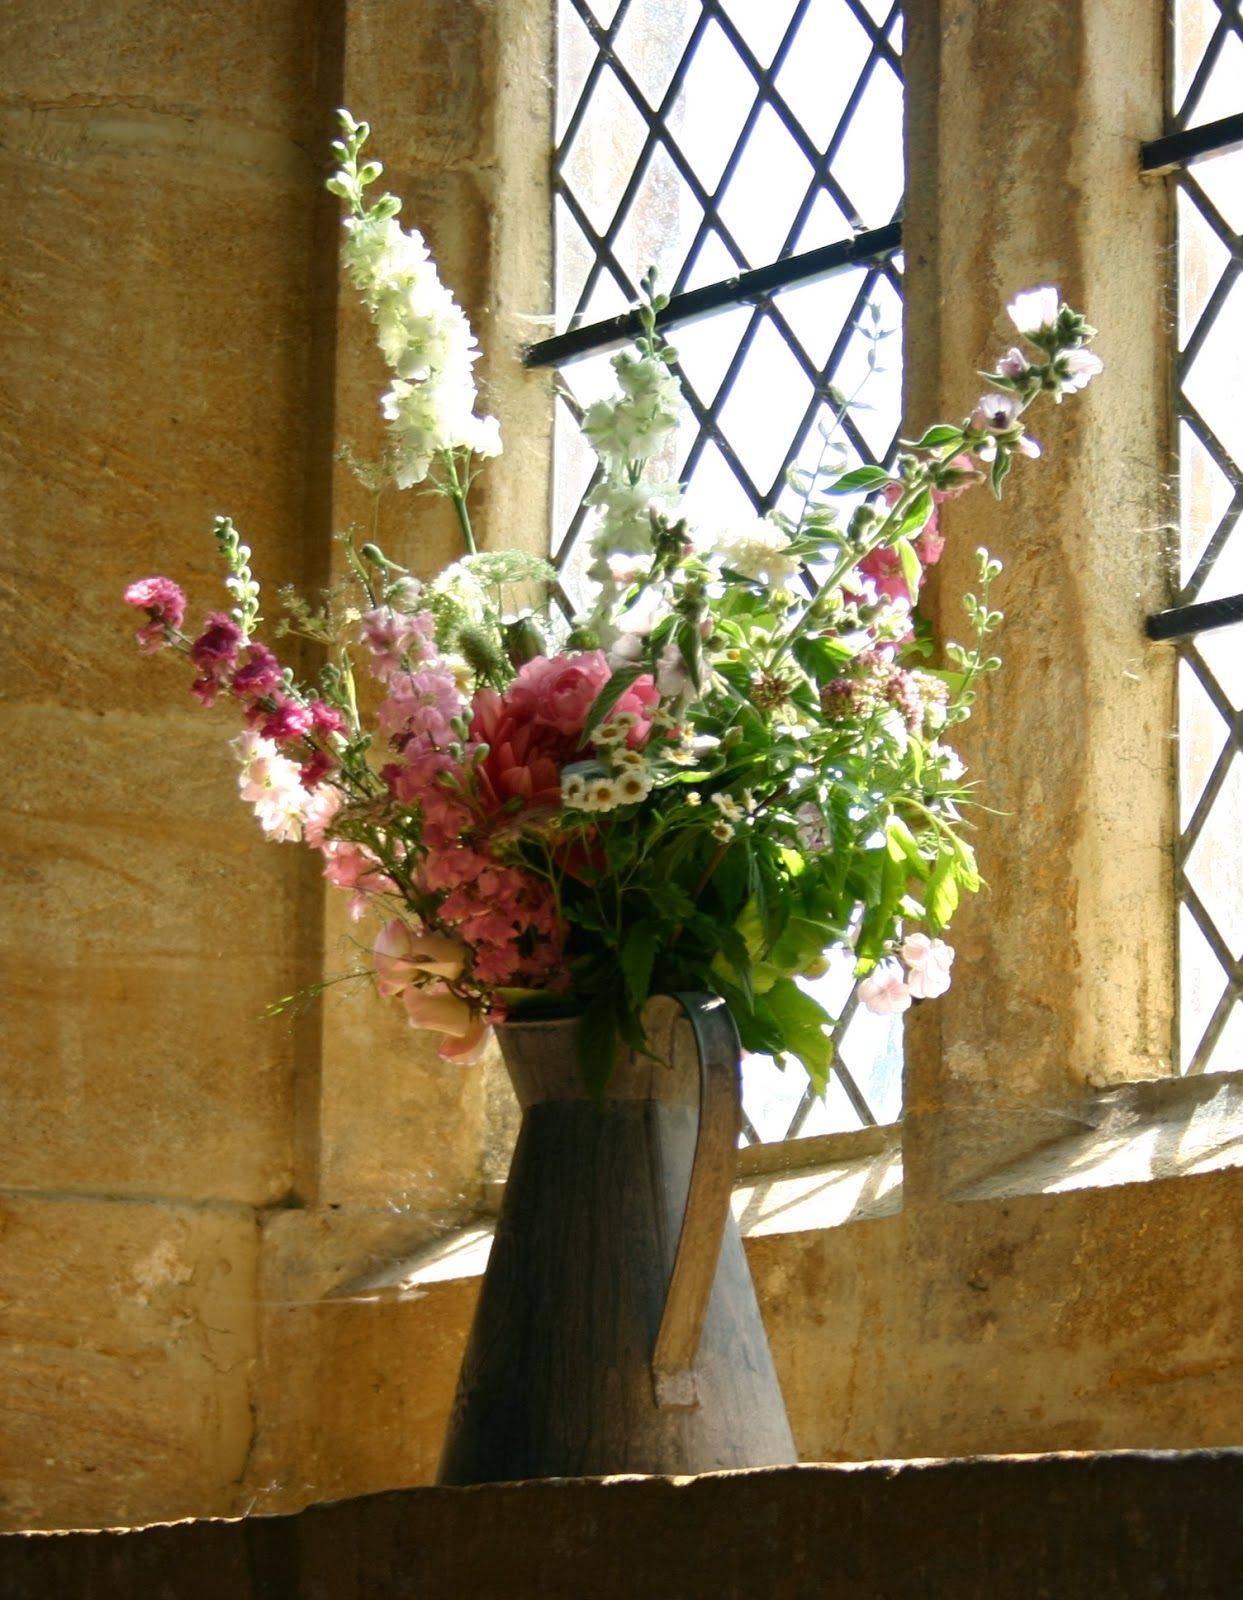 Vintage jug of flowers as a window dressing for the church ...